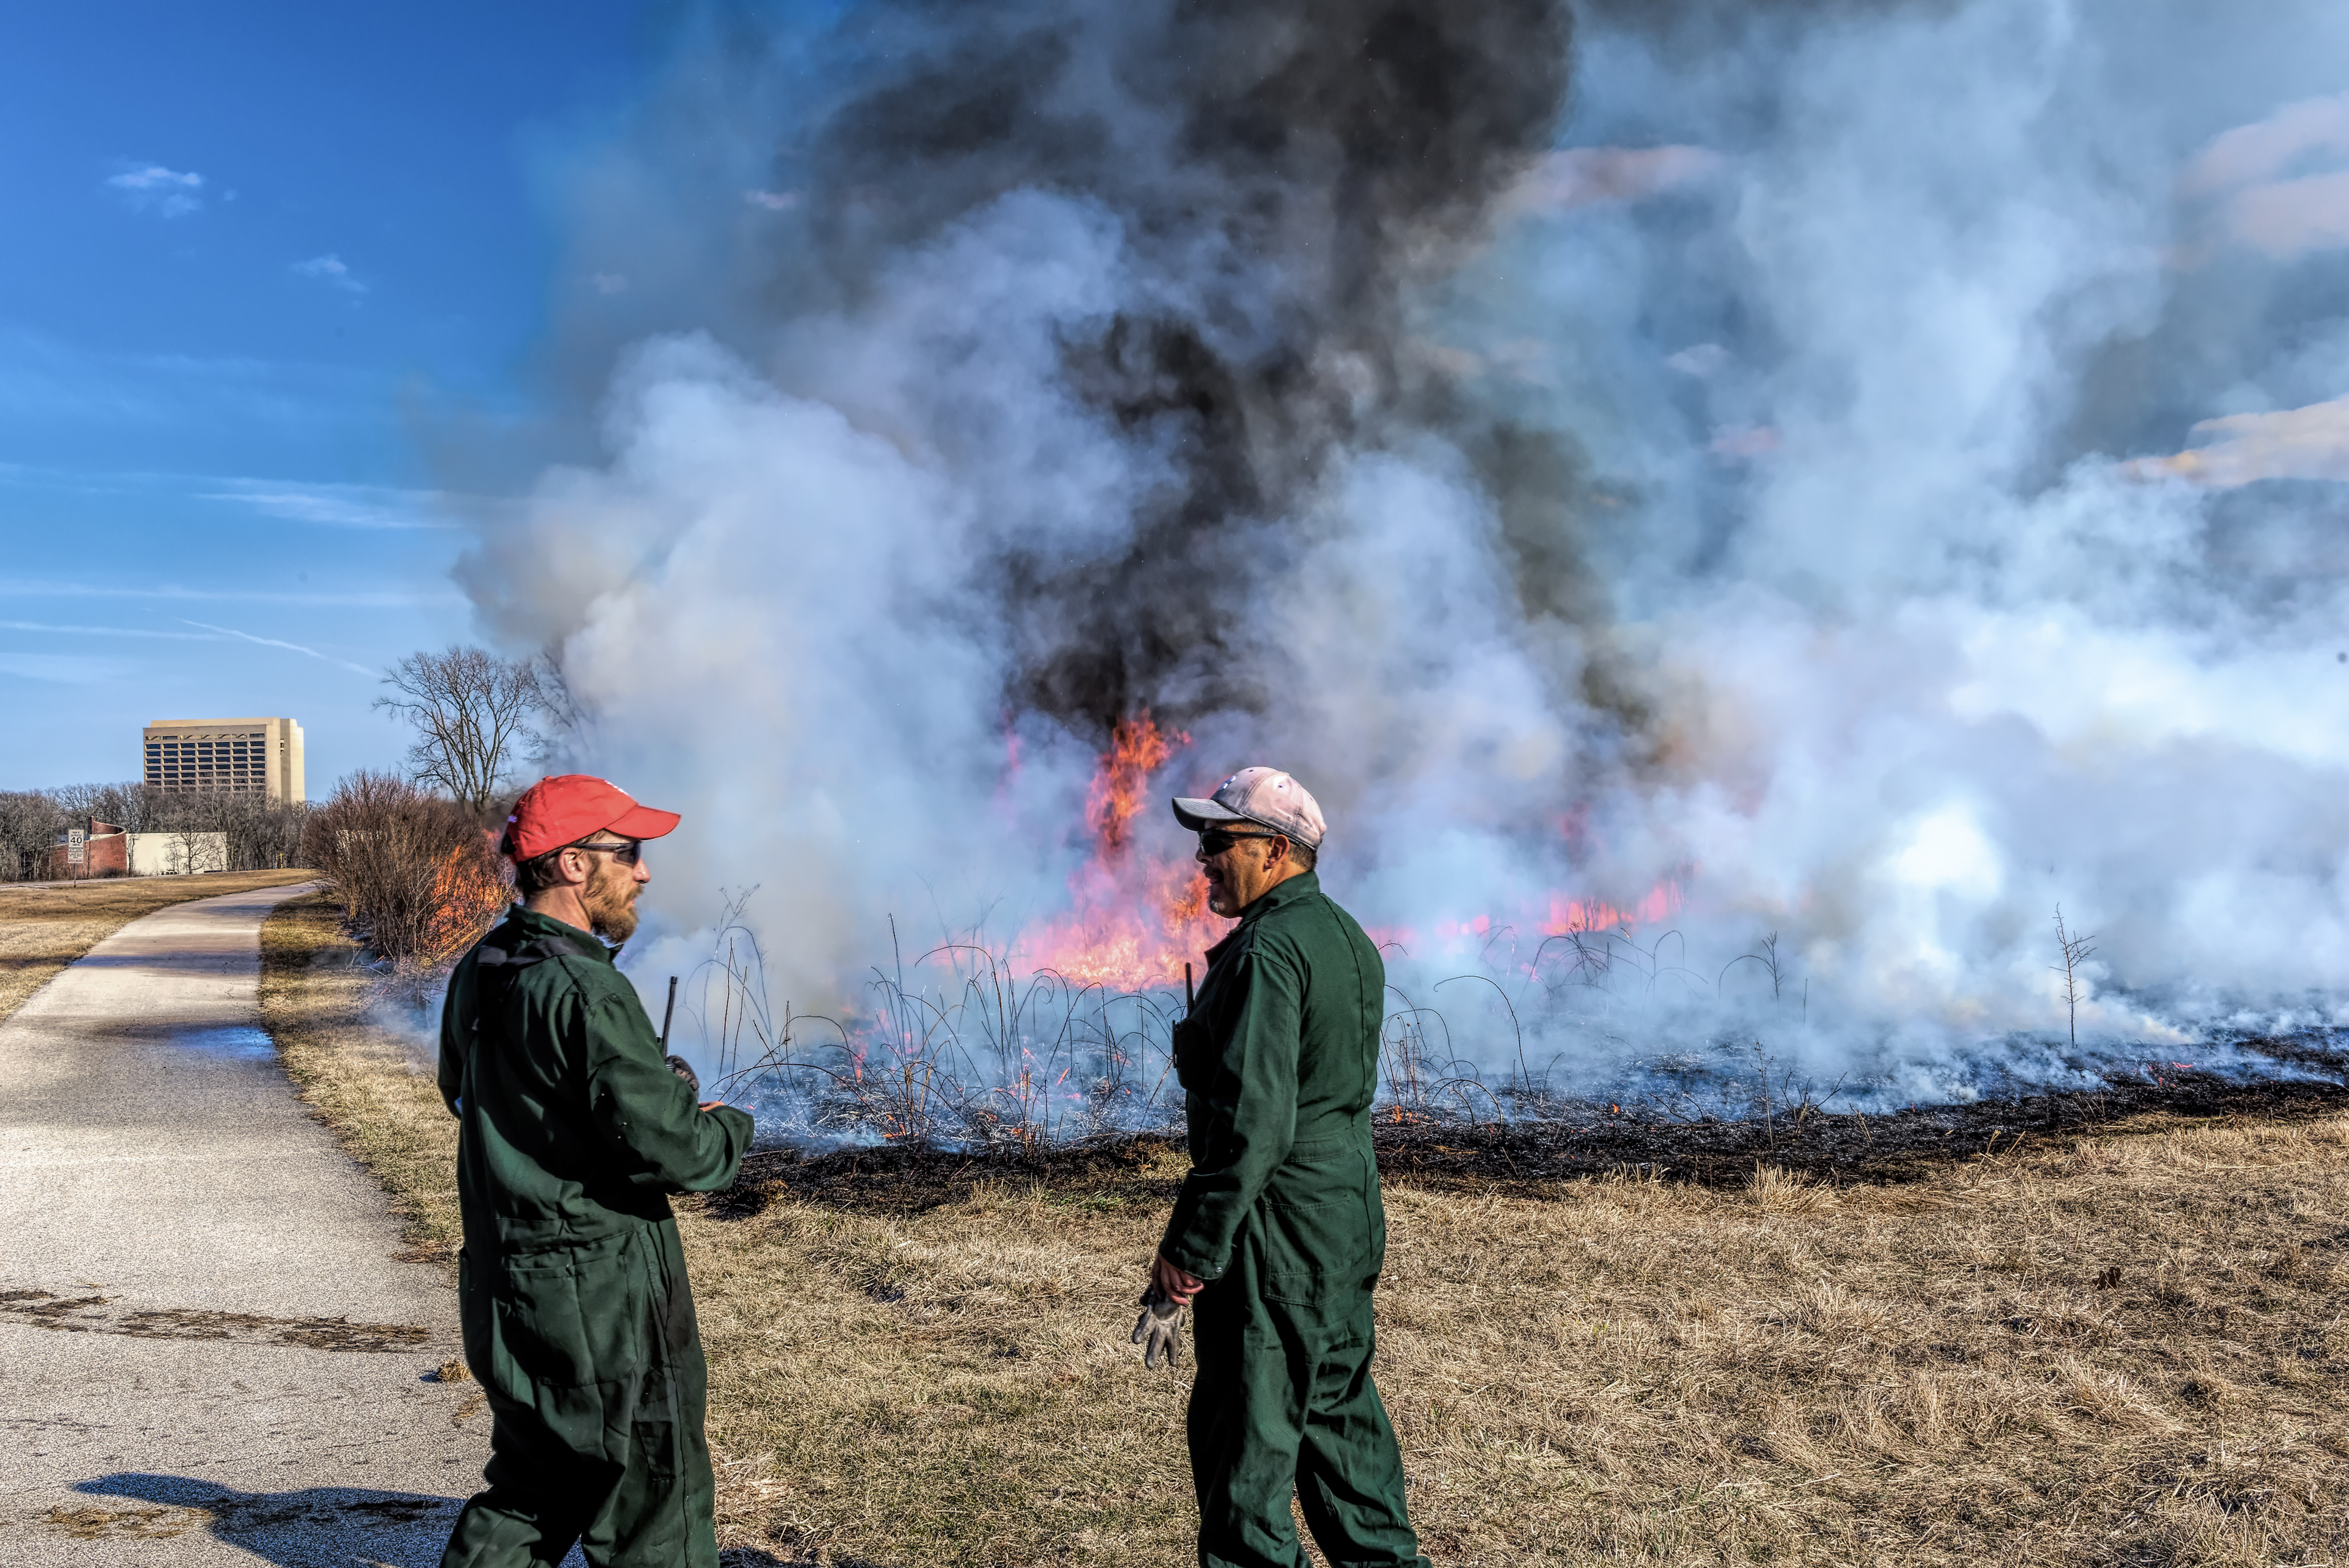 Ryan Campbell (left) and Martin Valenzuela tend to a controlled burn at the Pine Street entrance.